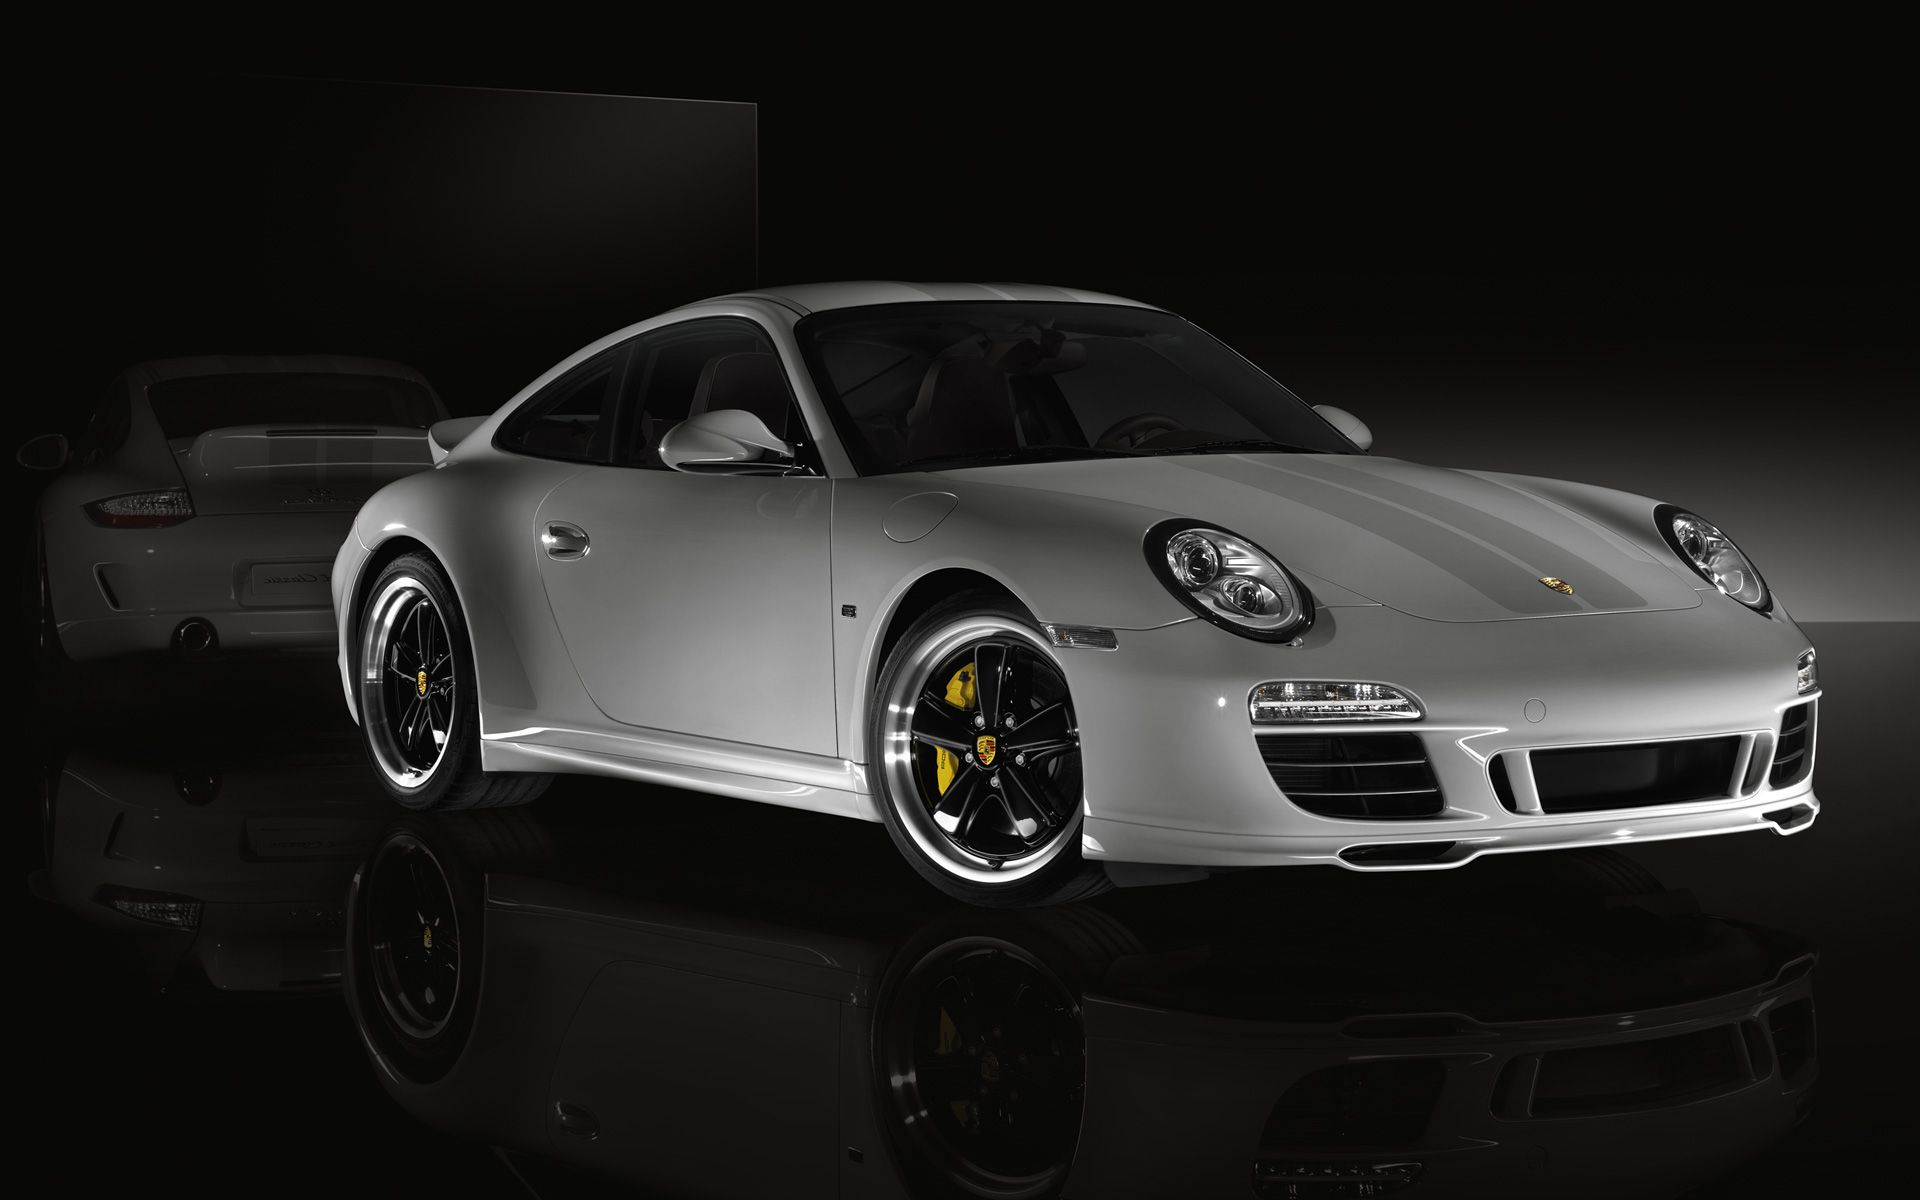 The Porsche Cayman As First Introduced In 2006 With The